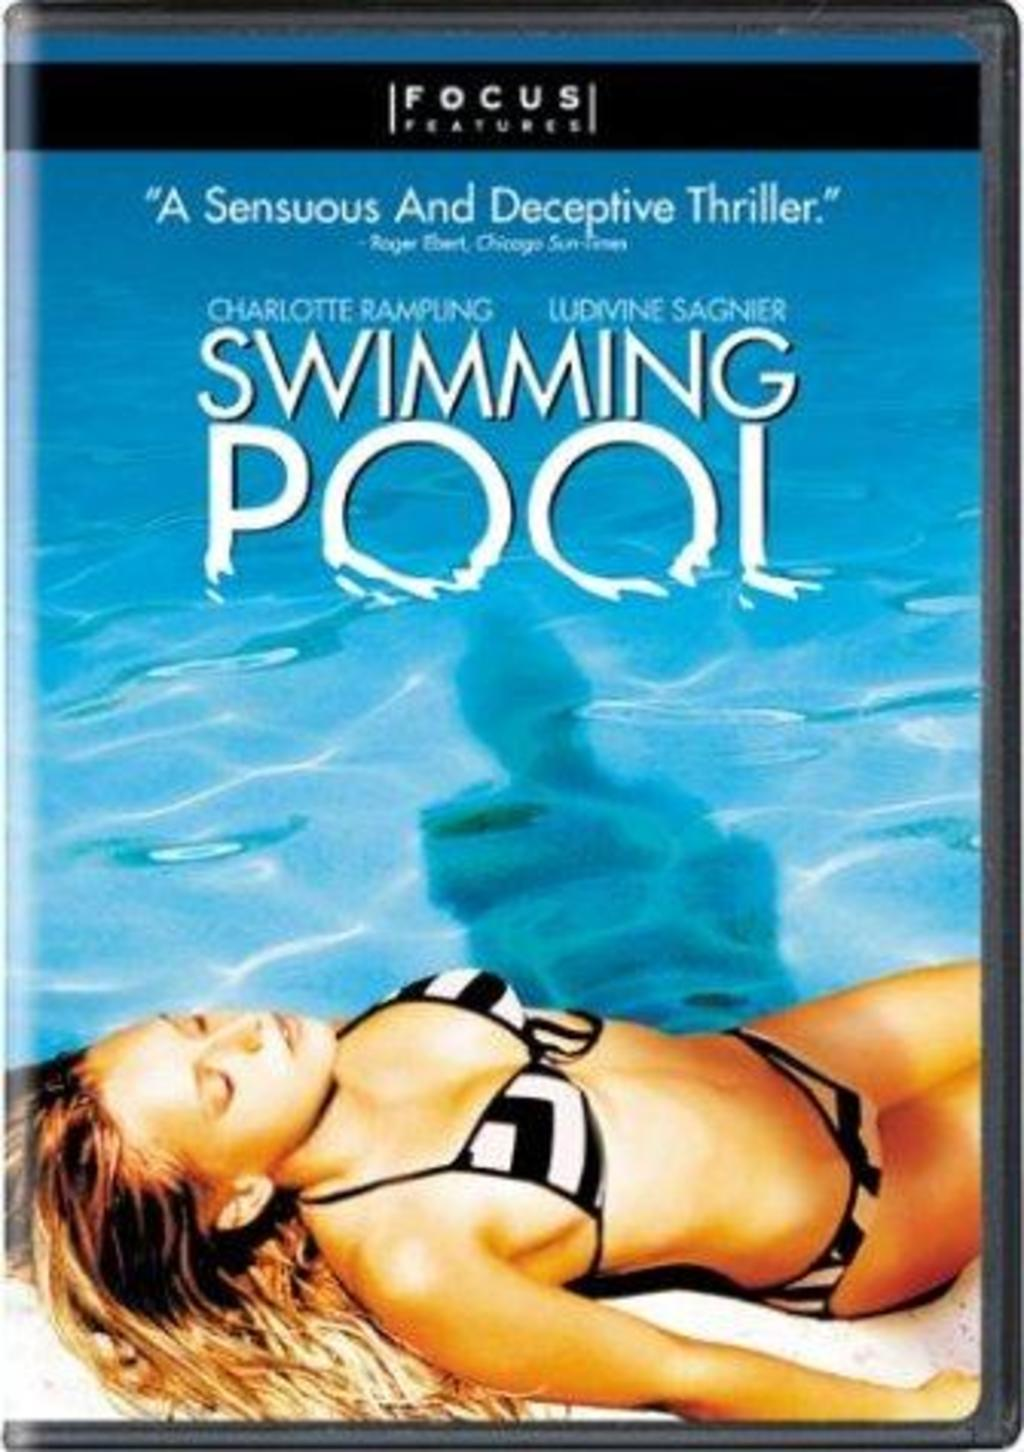 watch swimming pool on netflix today